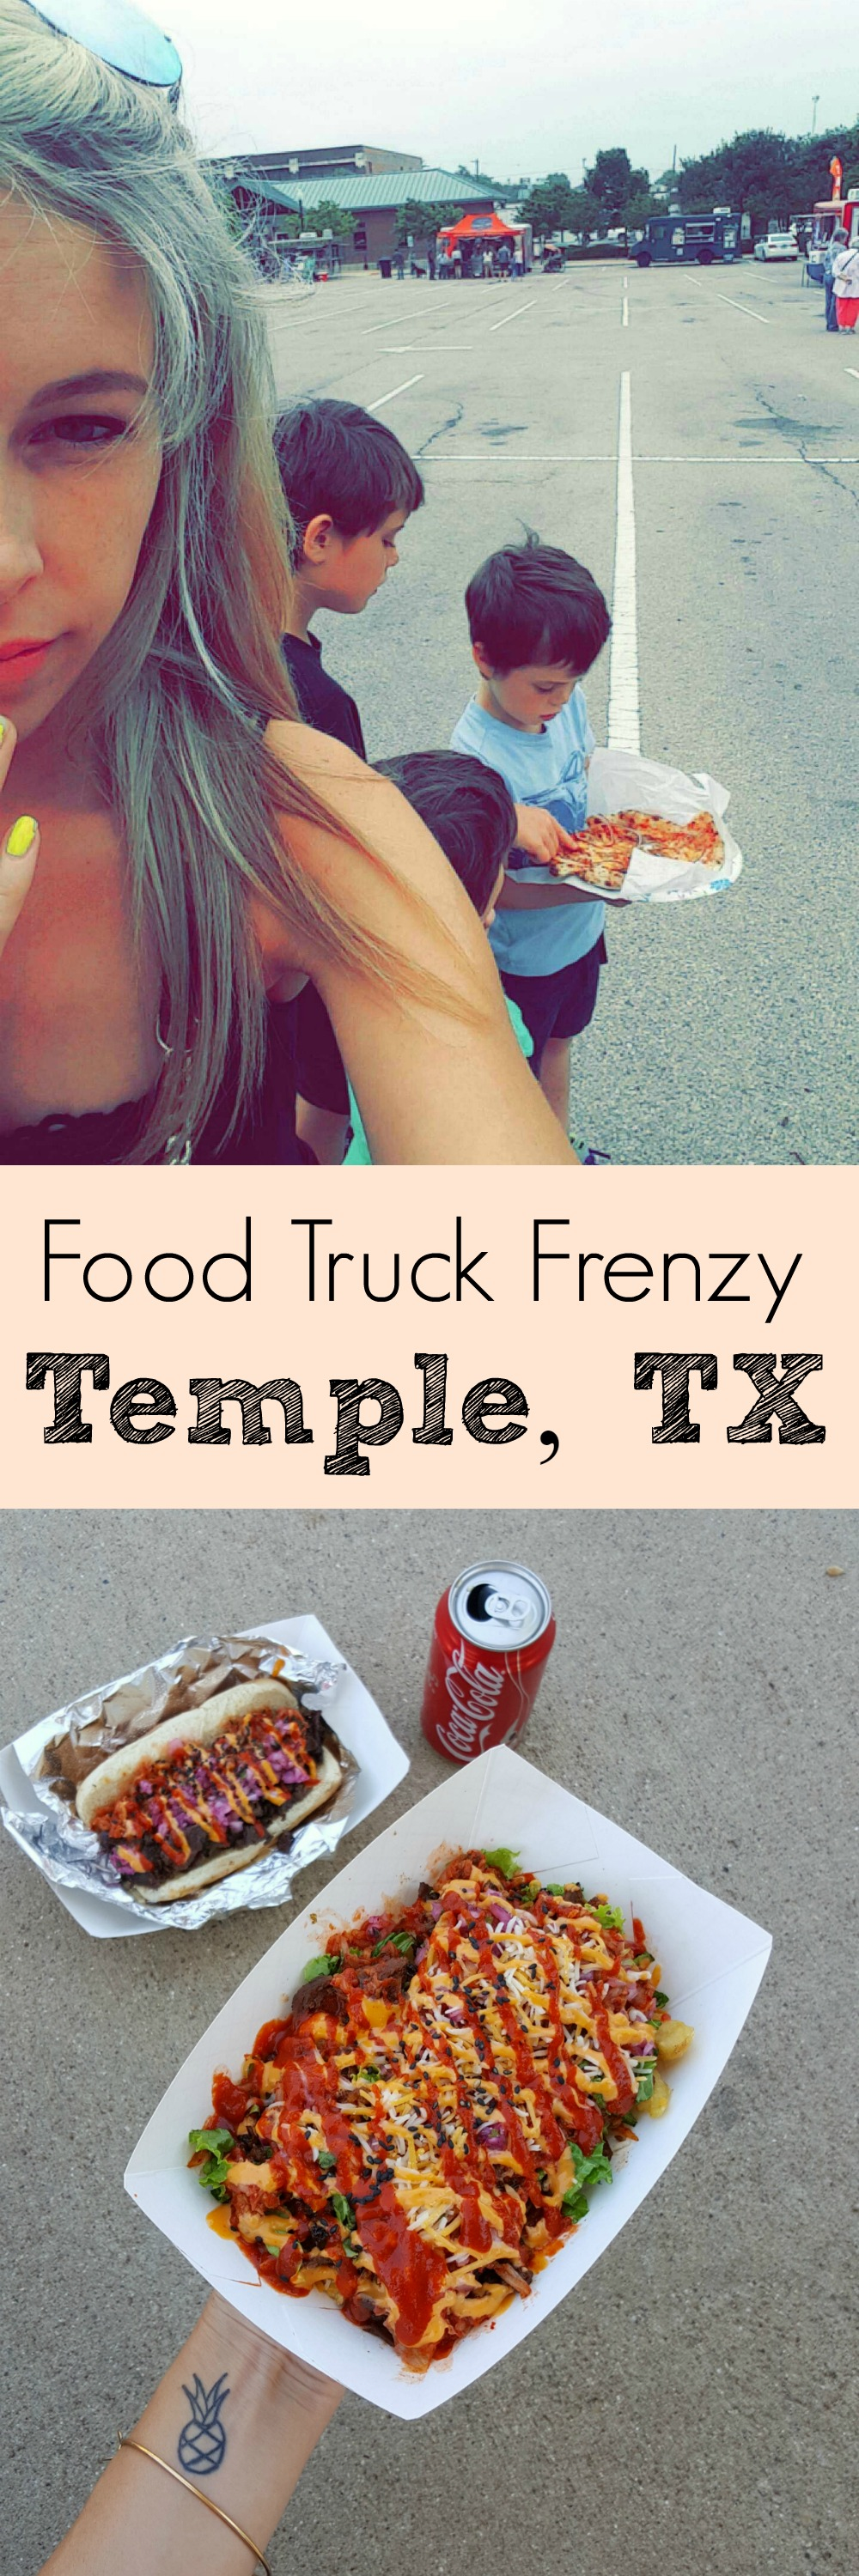 Food truck frenzy temple tx each month local food